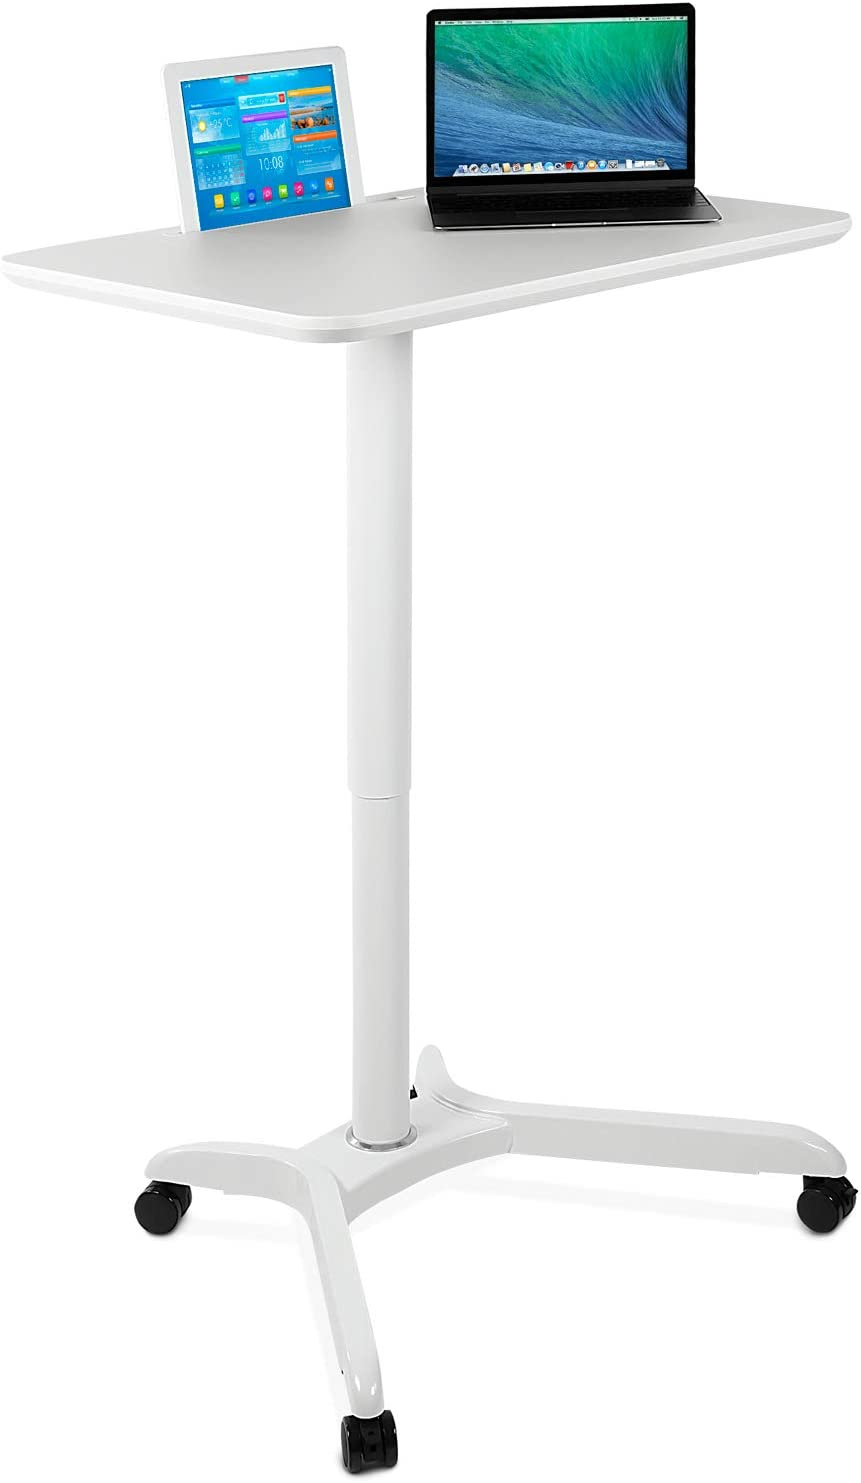 Mount It Standing Mobile Laptop Cart Sit Stand Rolling Desk With Height Adjustable 31 1 X 20 5 Platform Supports Up To 17 6 Lbs White Office Products